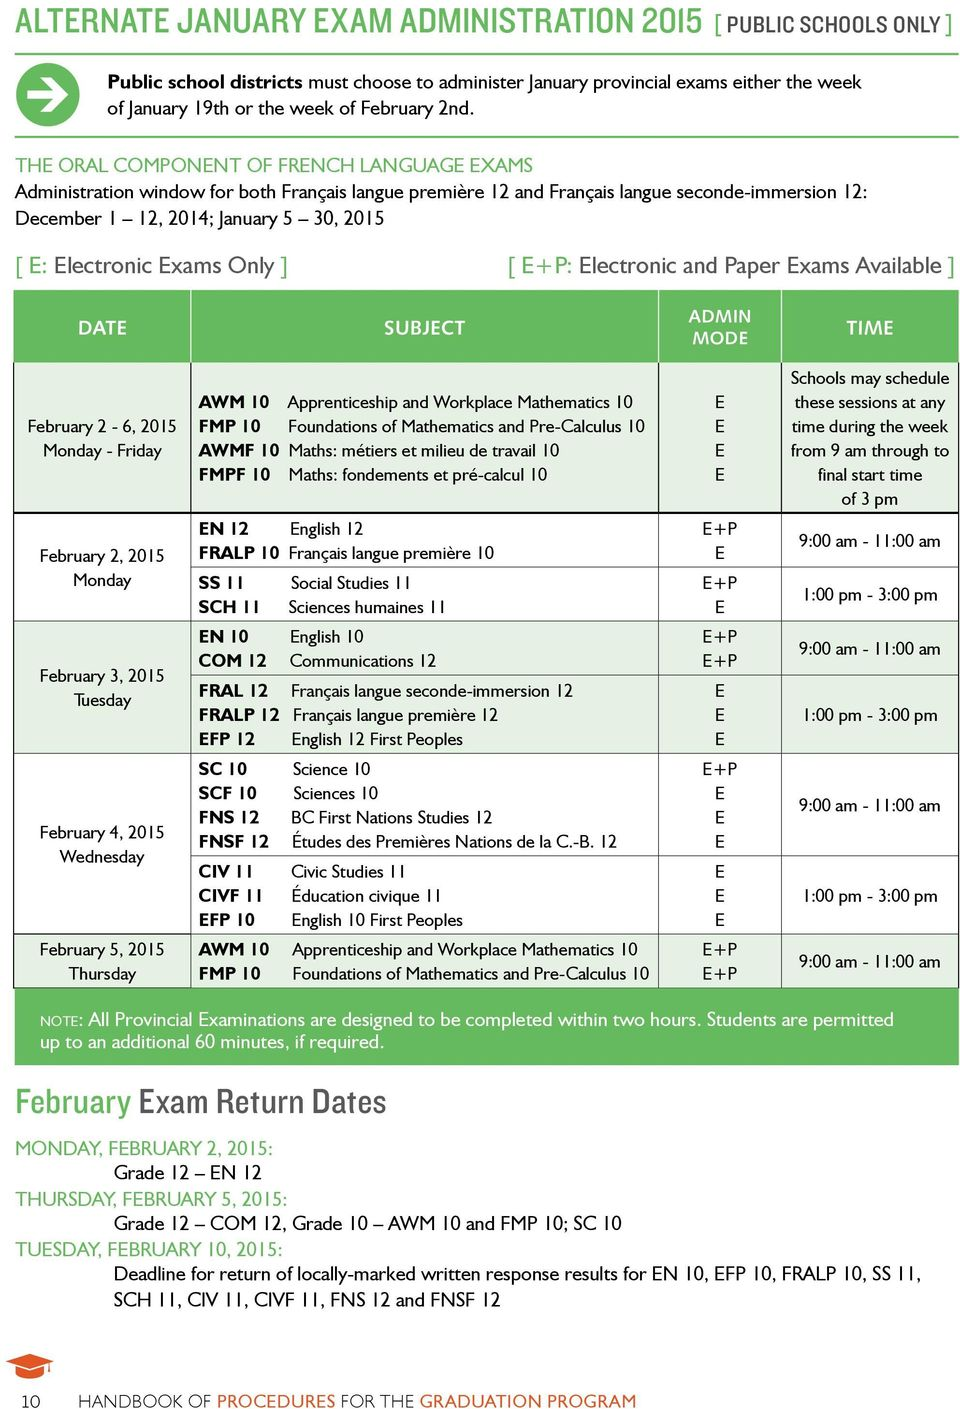 Electronic Exams Only ] [ E+P: Electronic and Paper Exams Available ] Date Subject AdMIN MODE Time February 2-6, 2015 Monday - Friday AWM 10 Apprenticeship and Workplace Mathematics 10 FMP 10